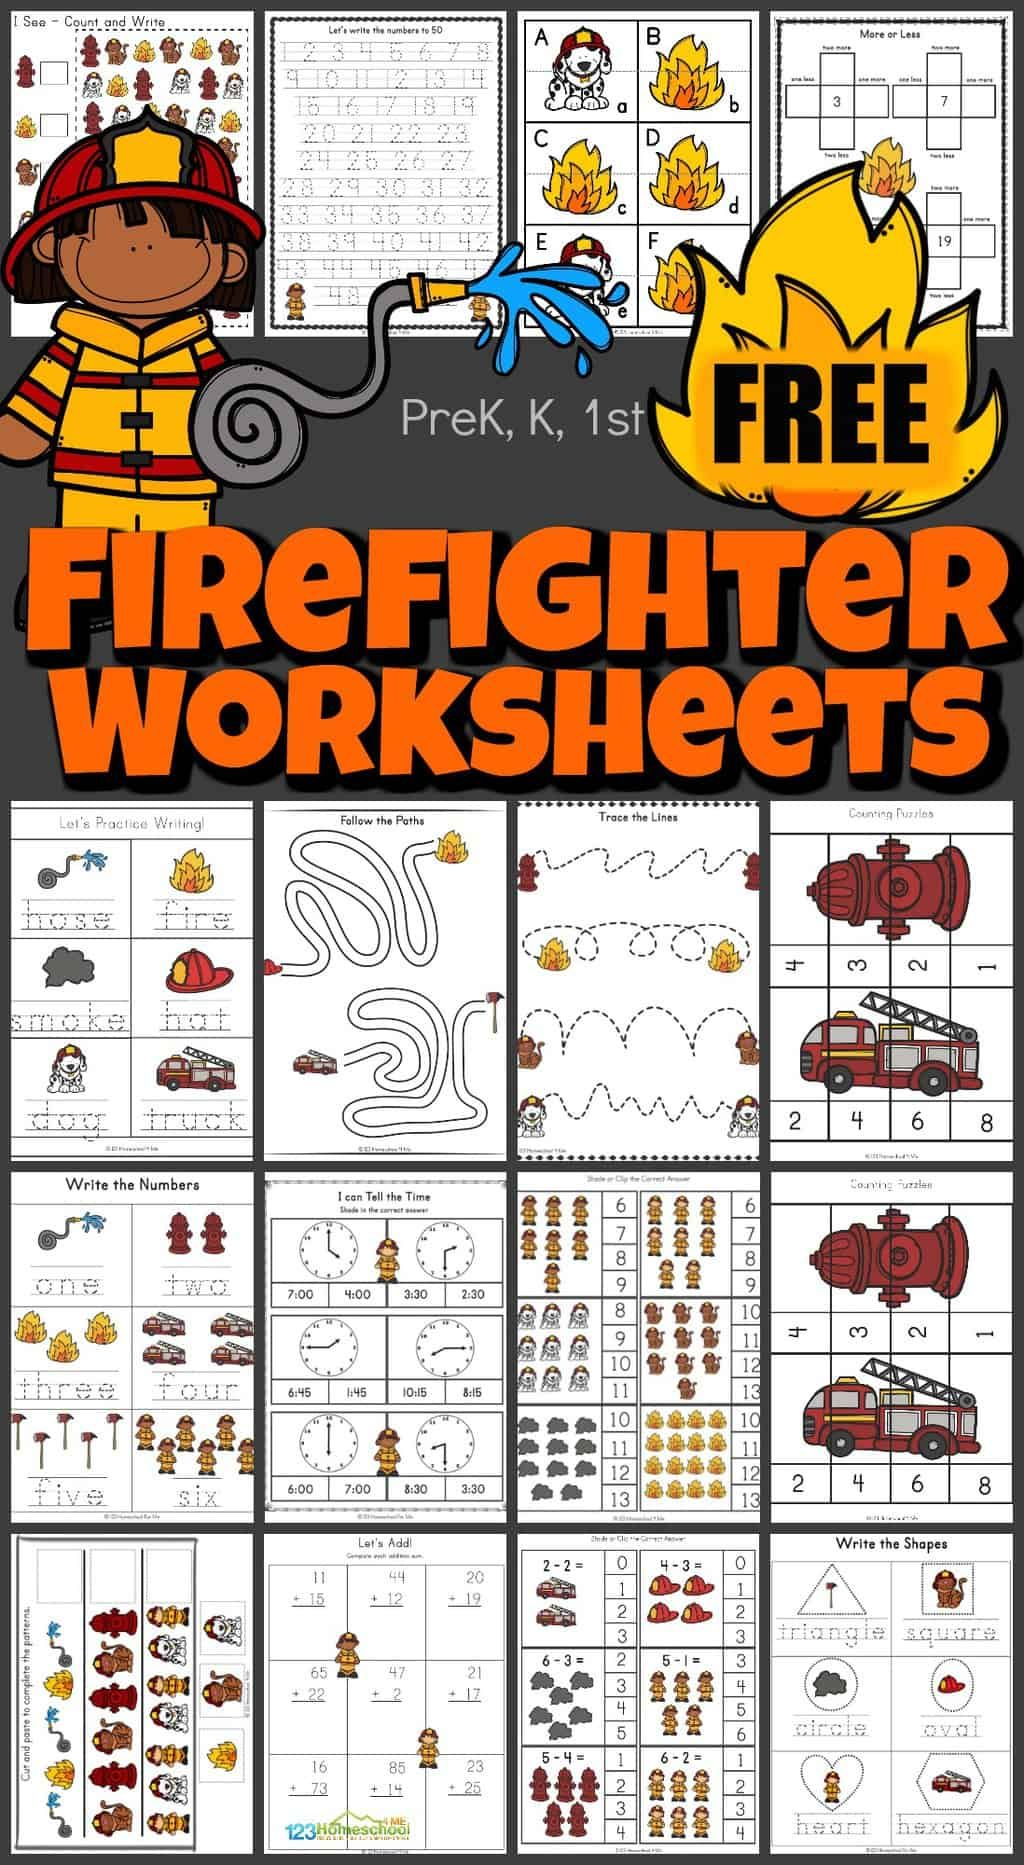 Free Firefighter Worksheets Fire Safety Worksheets Fire Safety Lessons Free Fire Safety Worksheets [ 1865 x 1024 Pixel ]